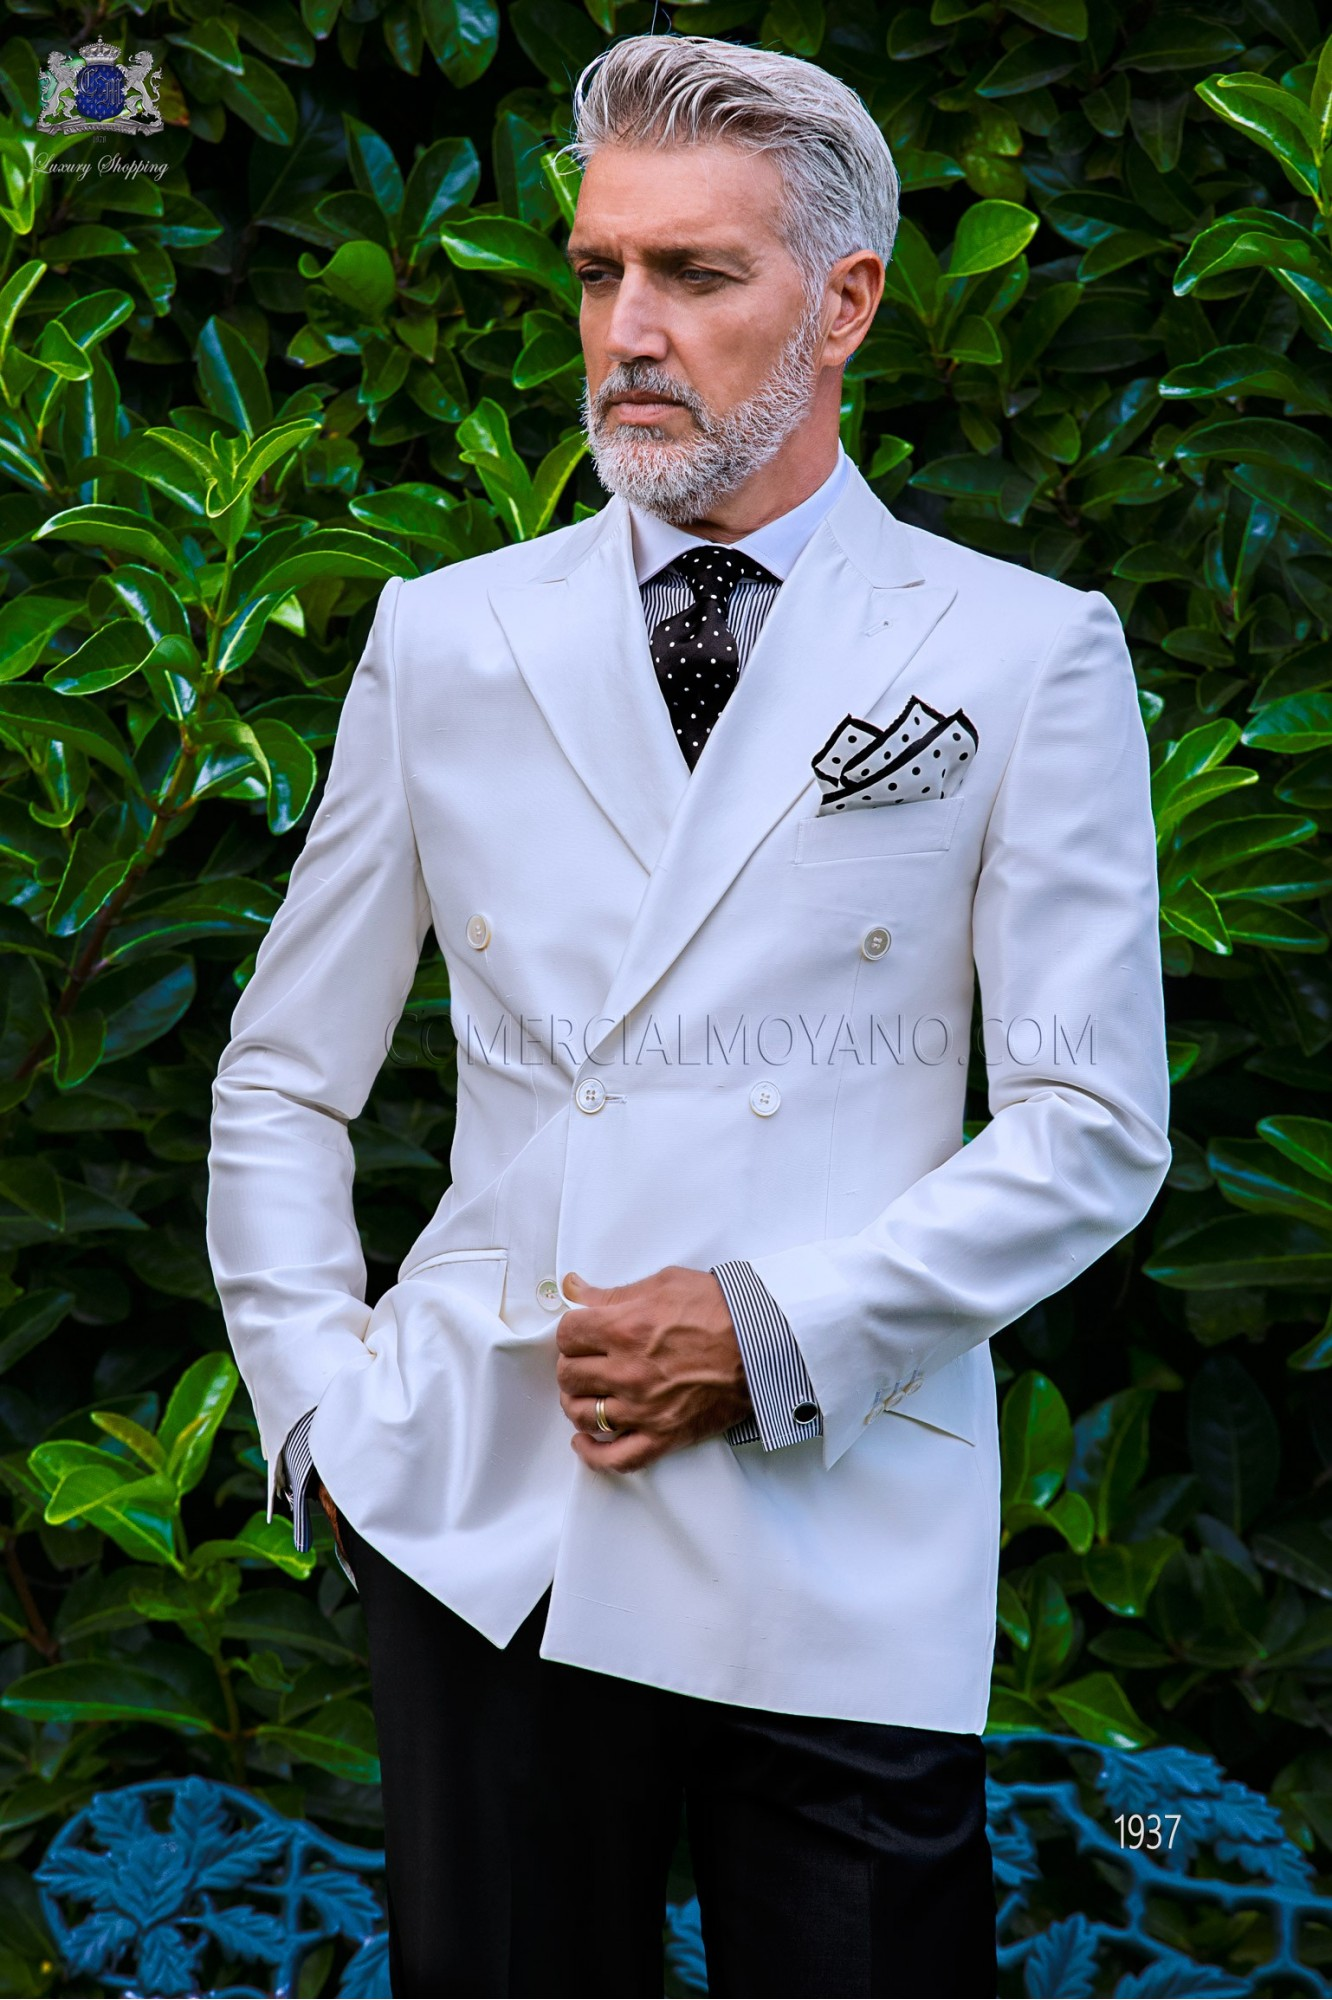 Bespoke white shantung double breasted jacket combined with a black trousers model 1937 Ottavio Nuccio Gala